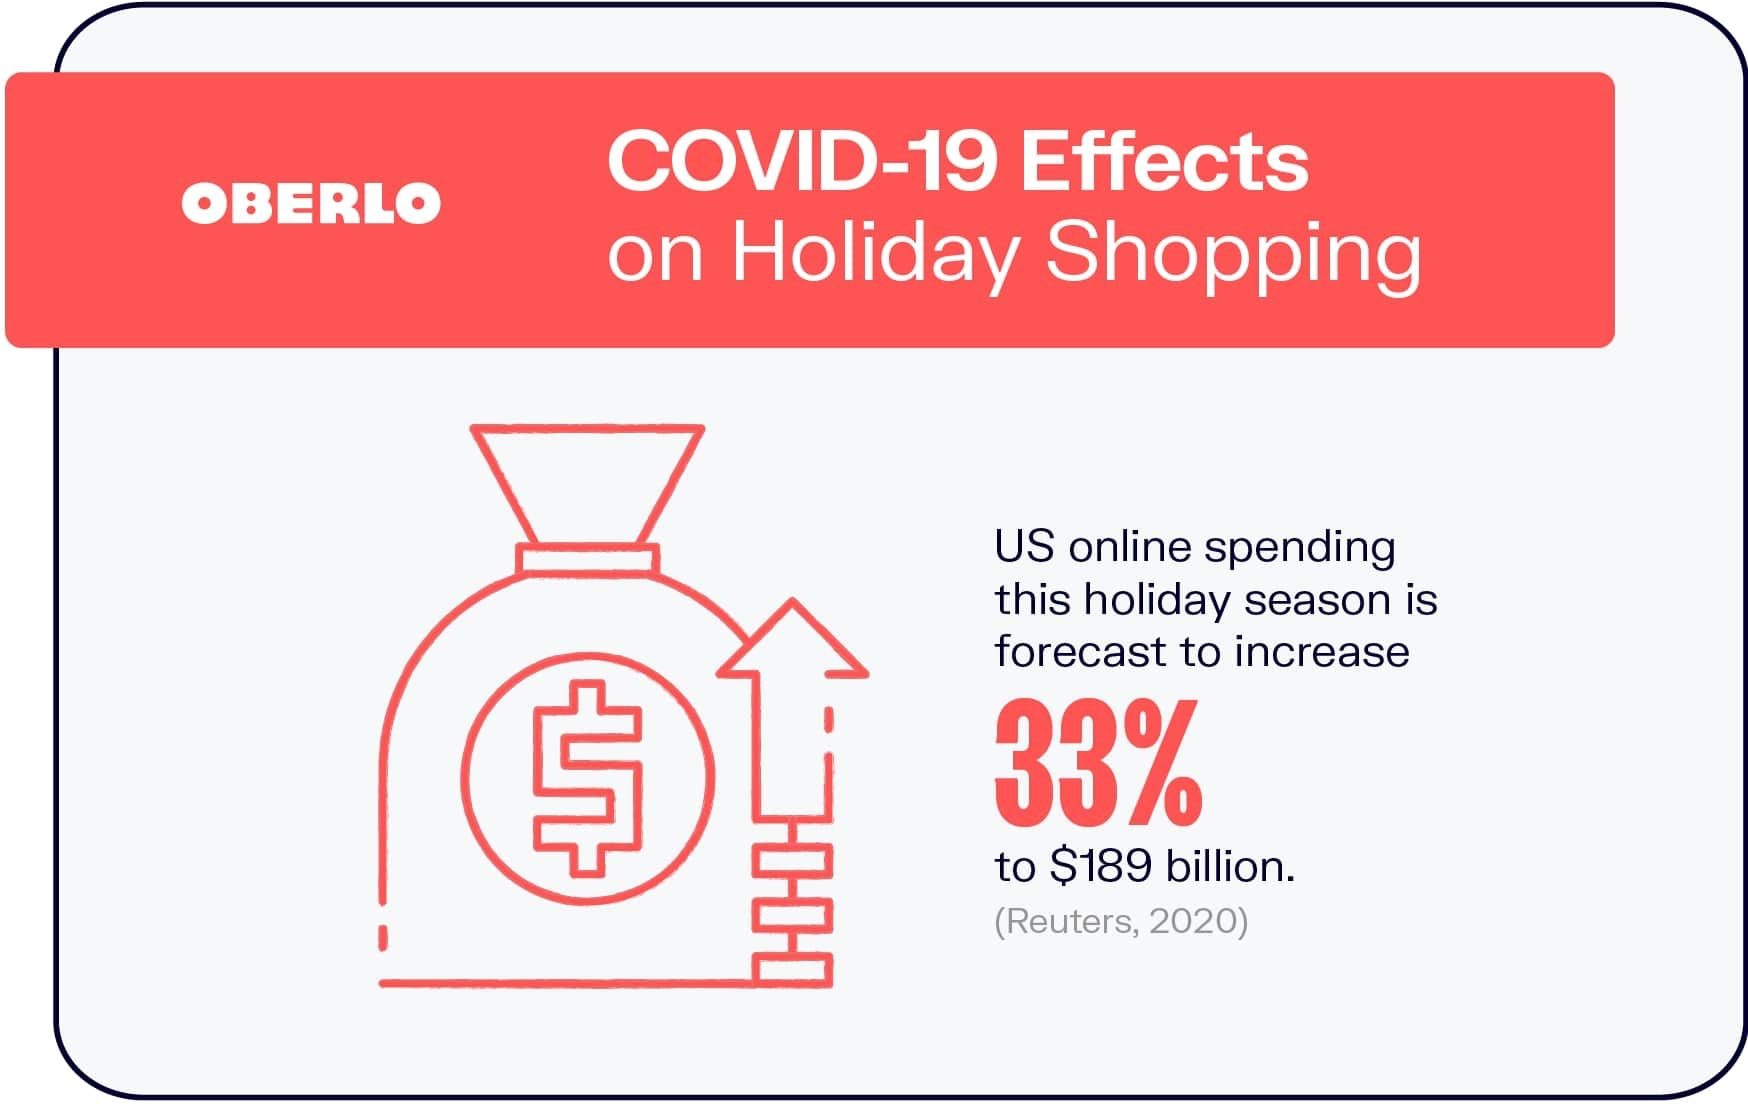 COVID-19 Effects on Holiday Shopping